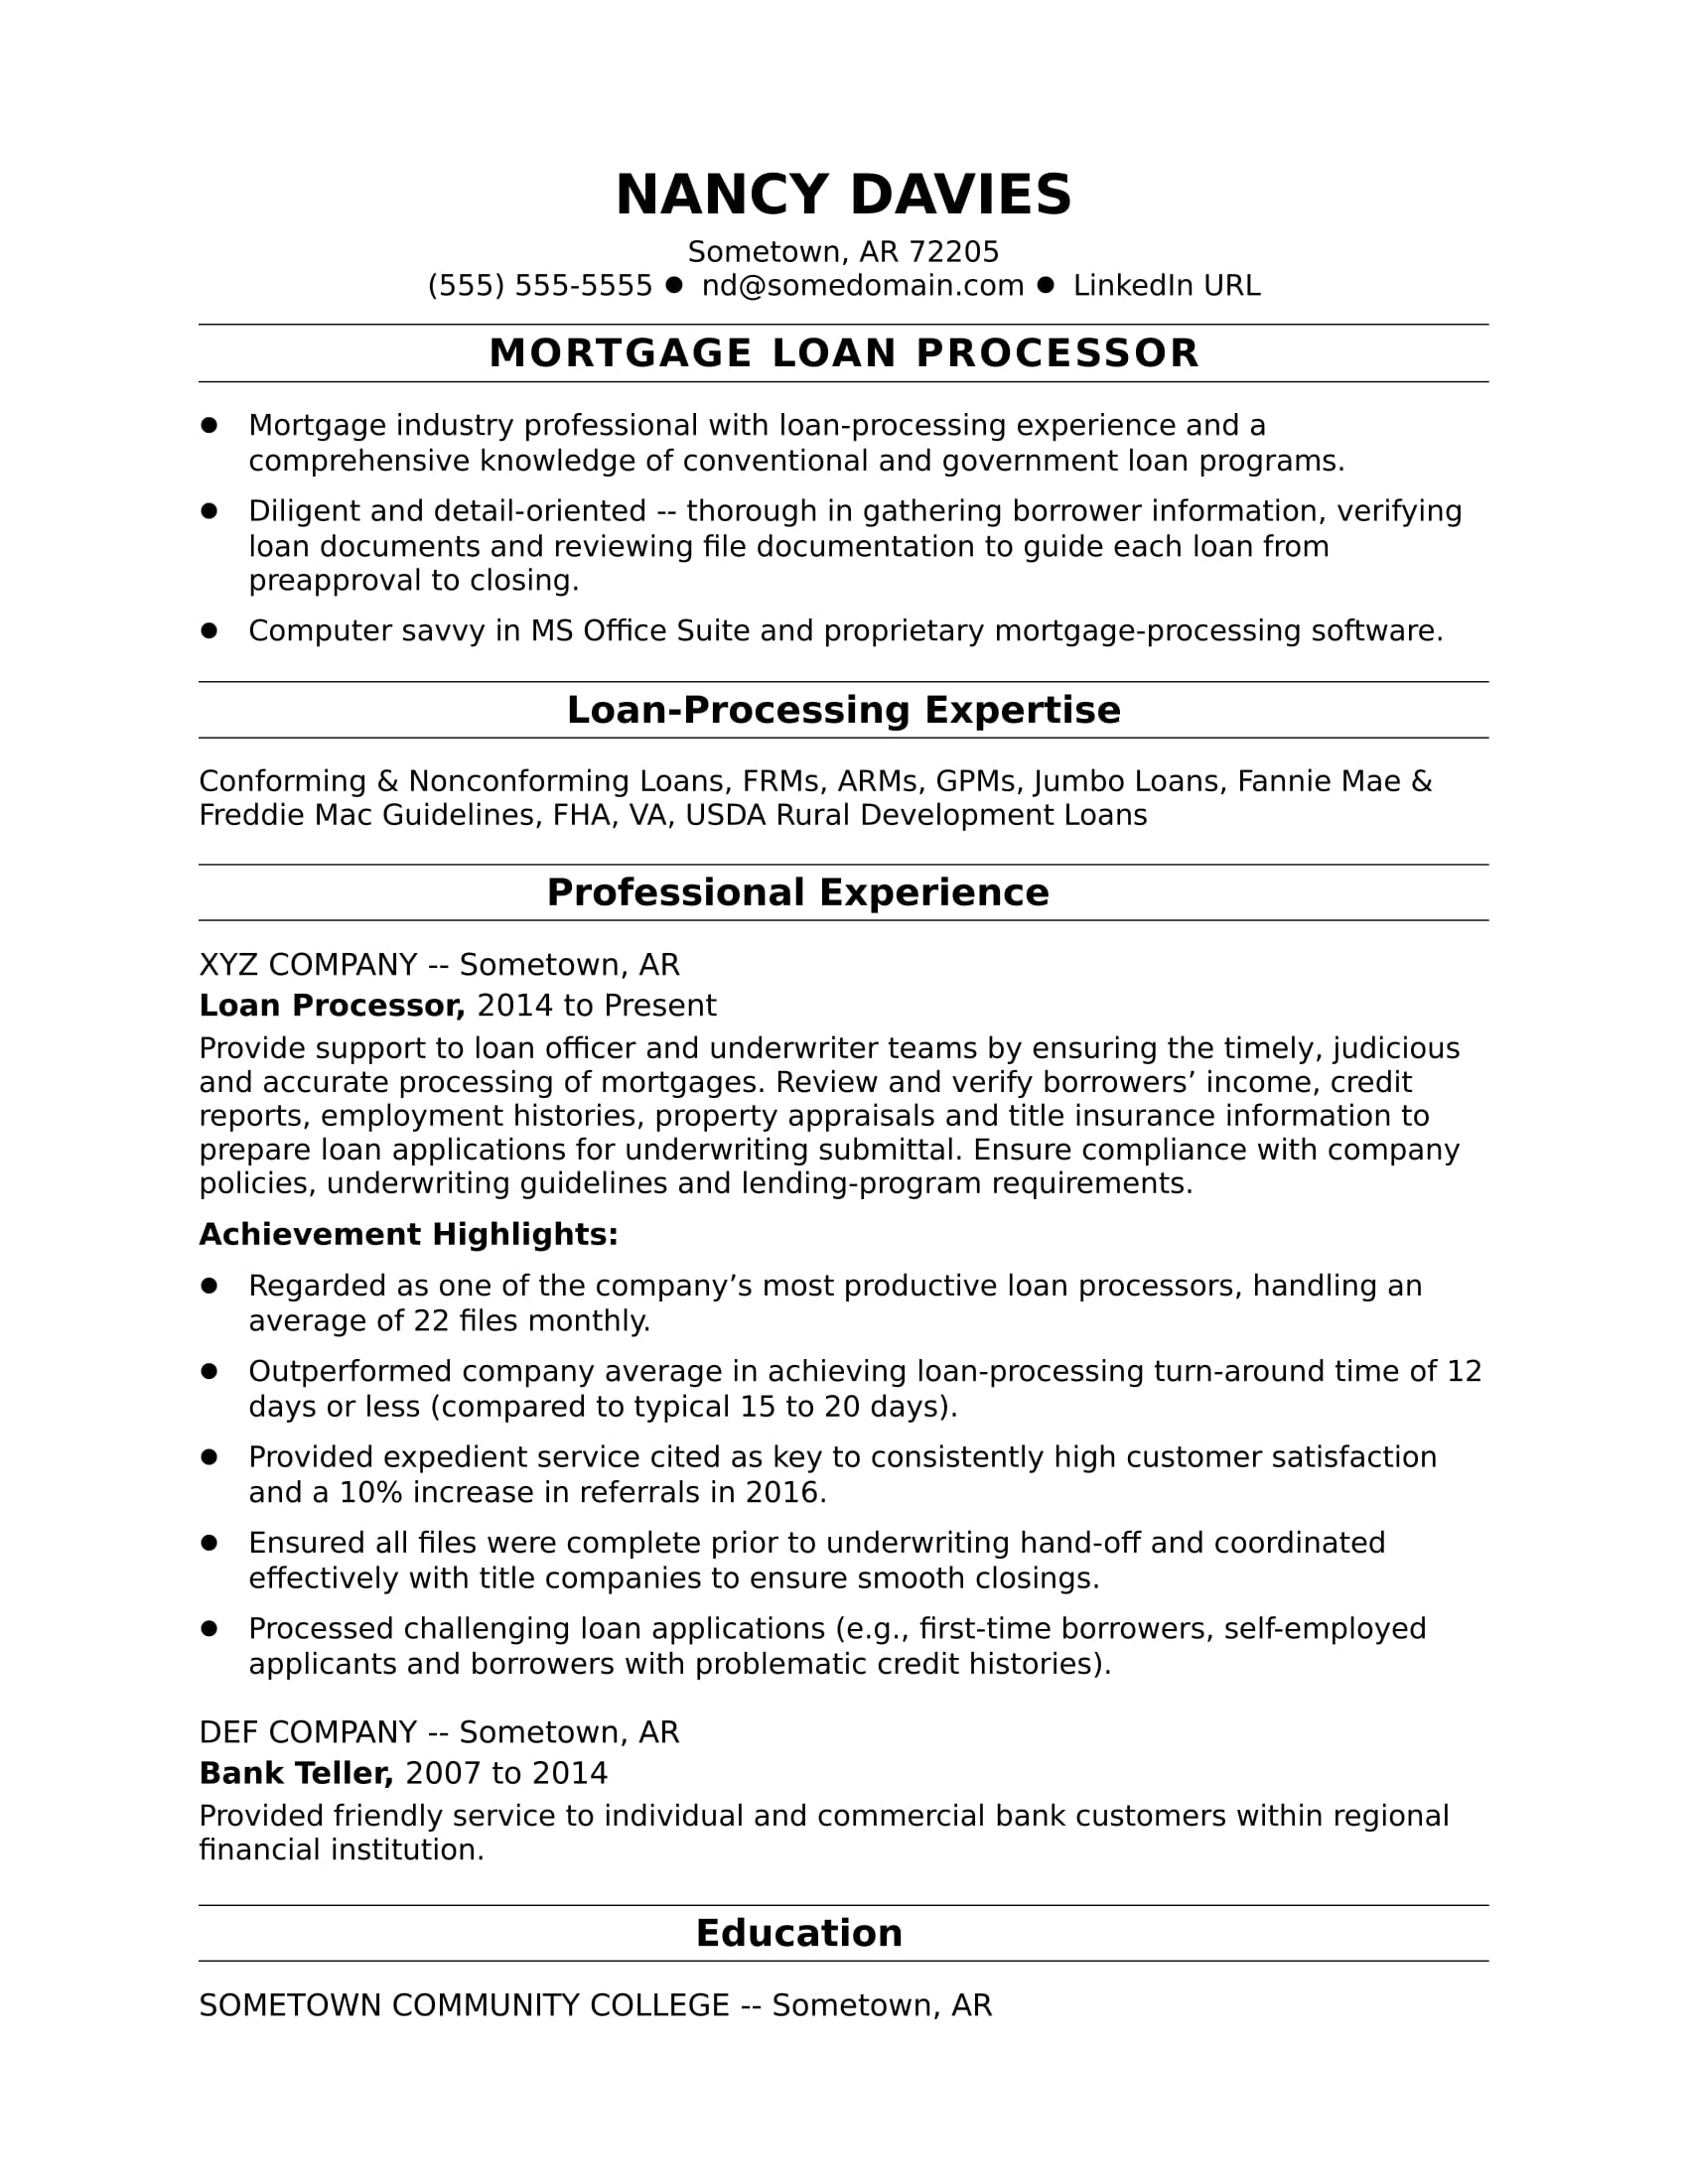 Mortgage loan processor resume sample monster sample resume for a mortgage loan processor madrichimfo Gallery